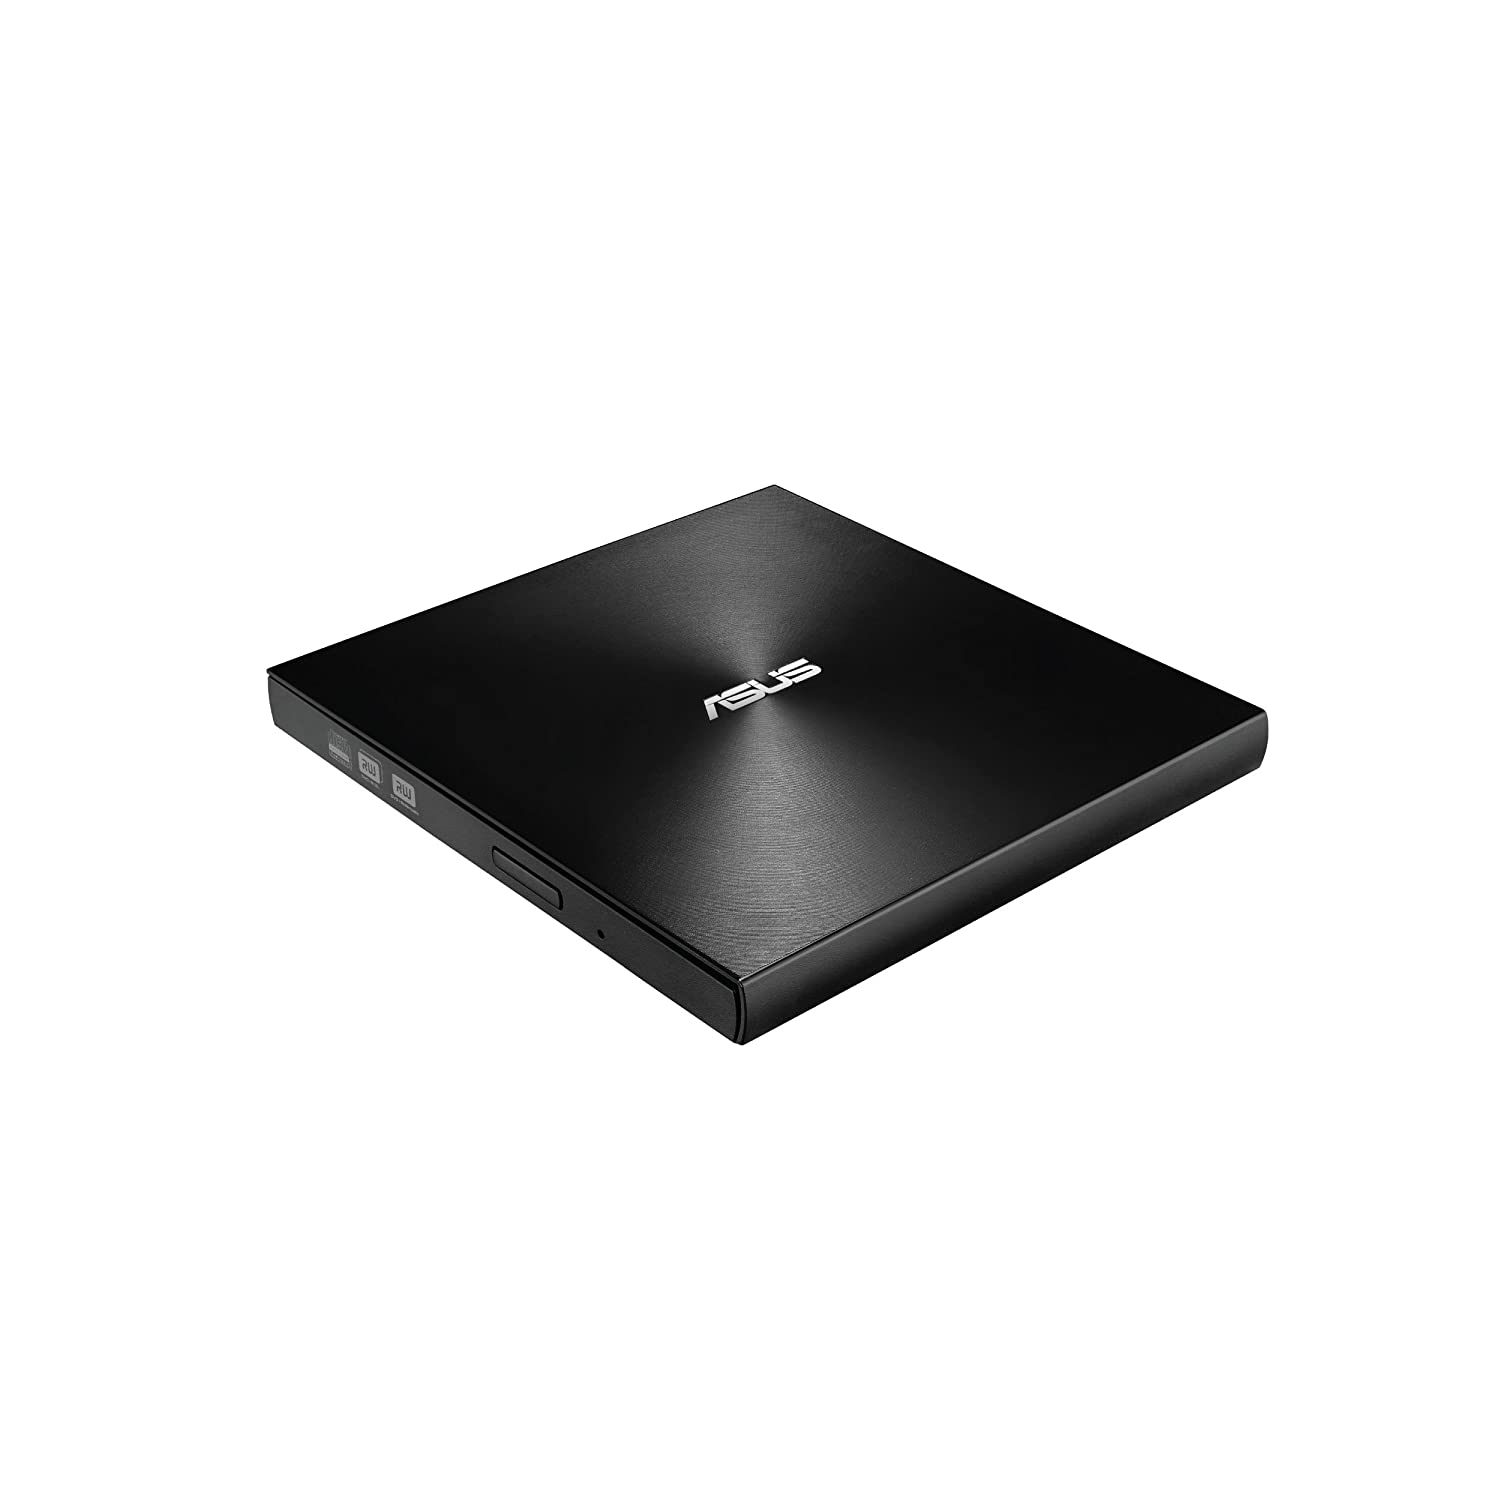 ASUS ZenDrive Black 13mm External 8X DVD/Burner Drive +/-RW with M-Disc Support, Compatible with Both Mac & Windows and Nero BackItUp for Android Devices (USB 2.0 & Type-C Cables Included)